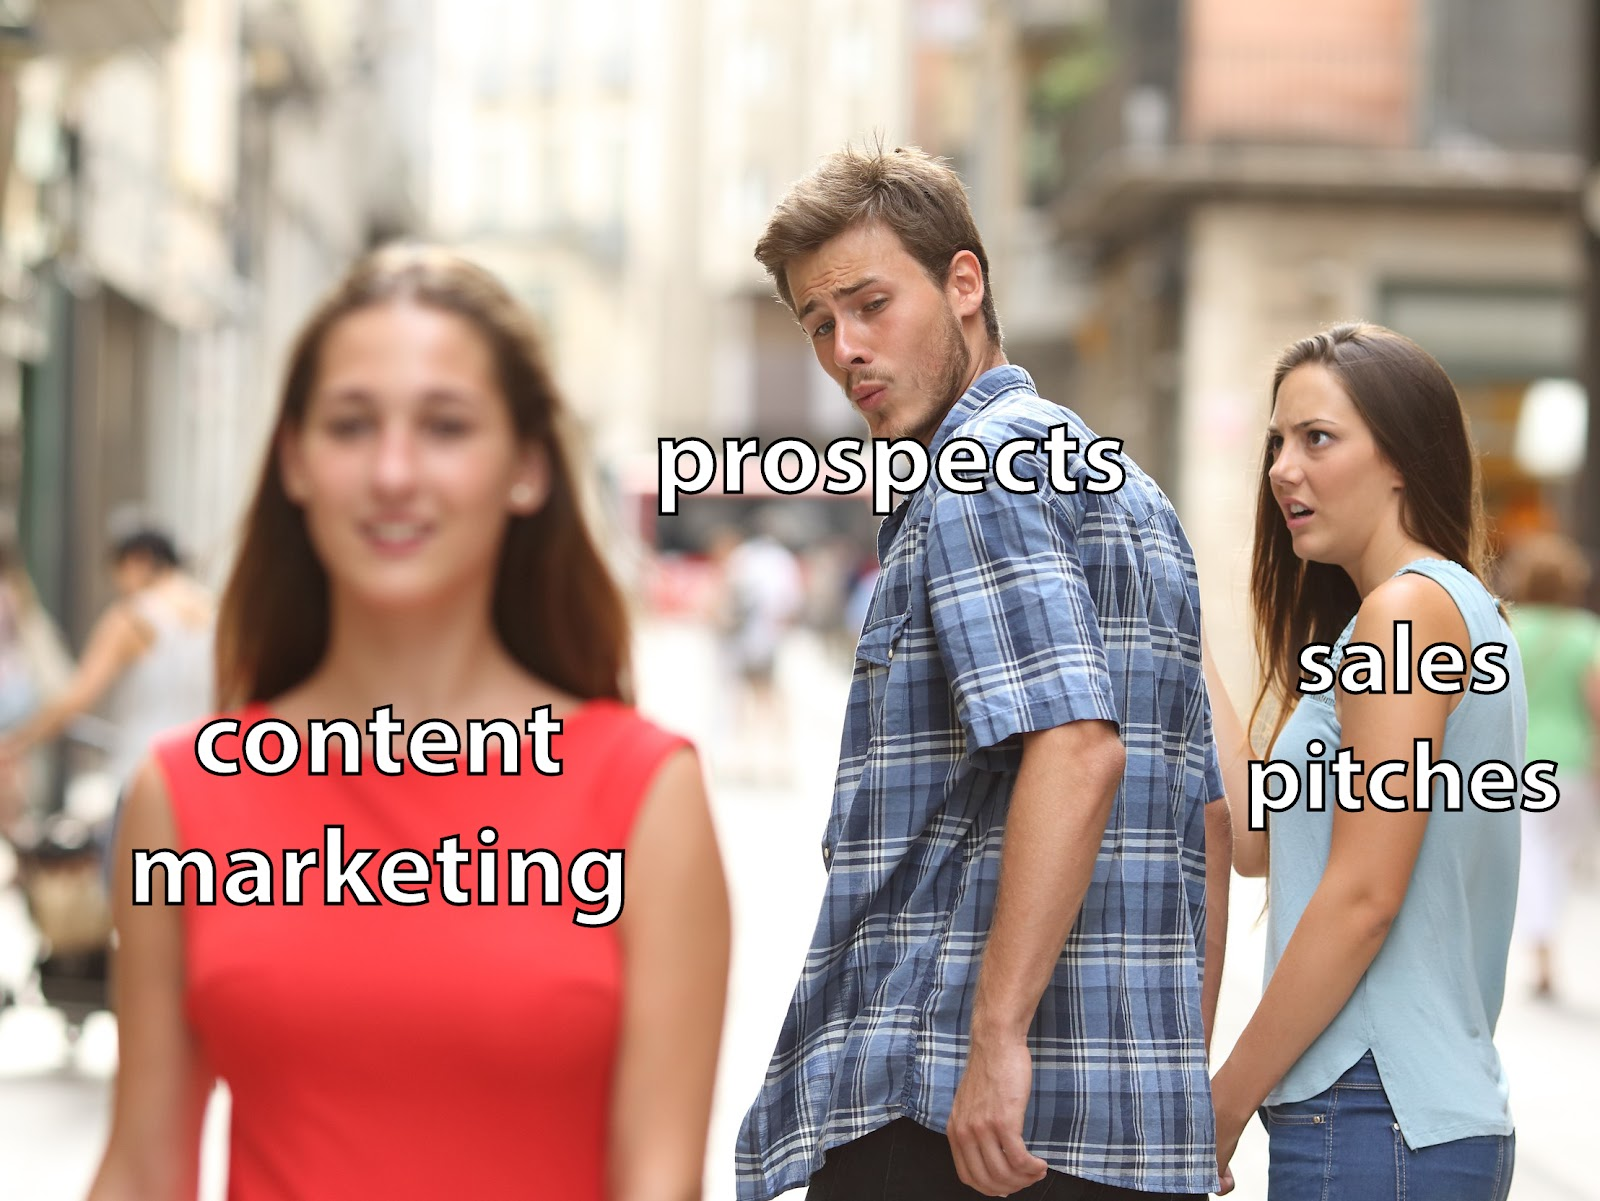 A meme wherein prospects favor content marketing over sales pitches.